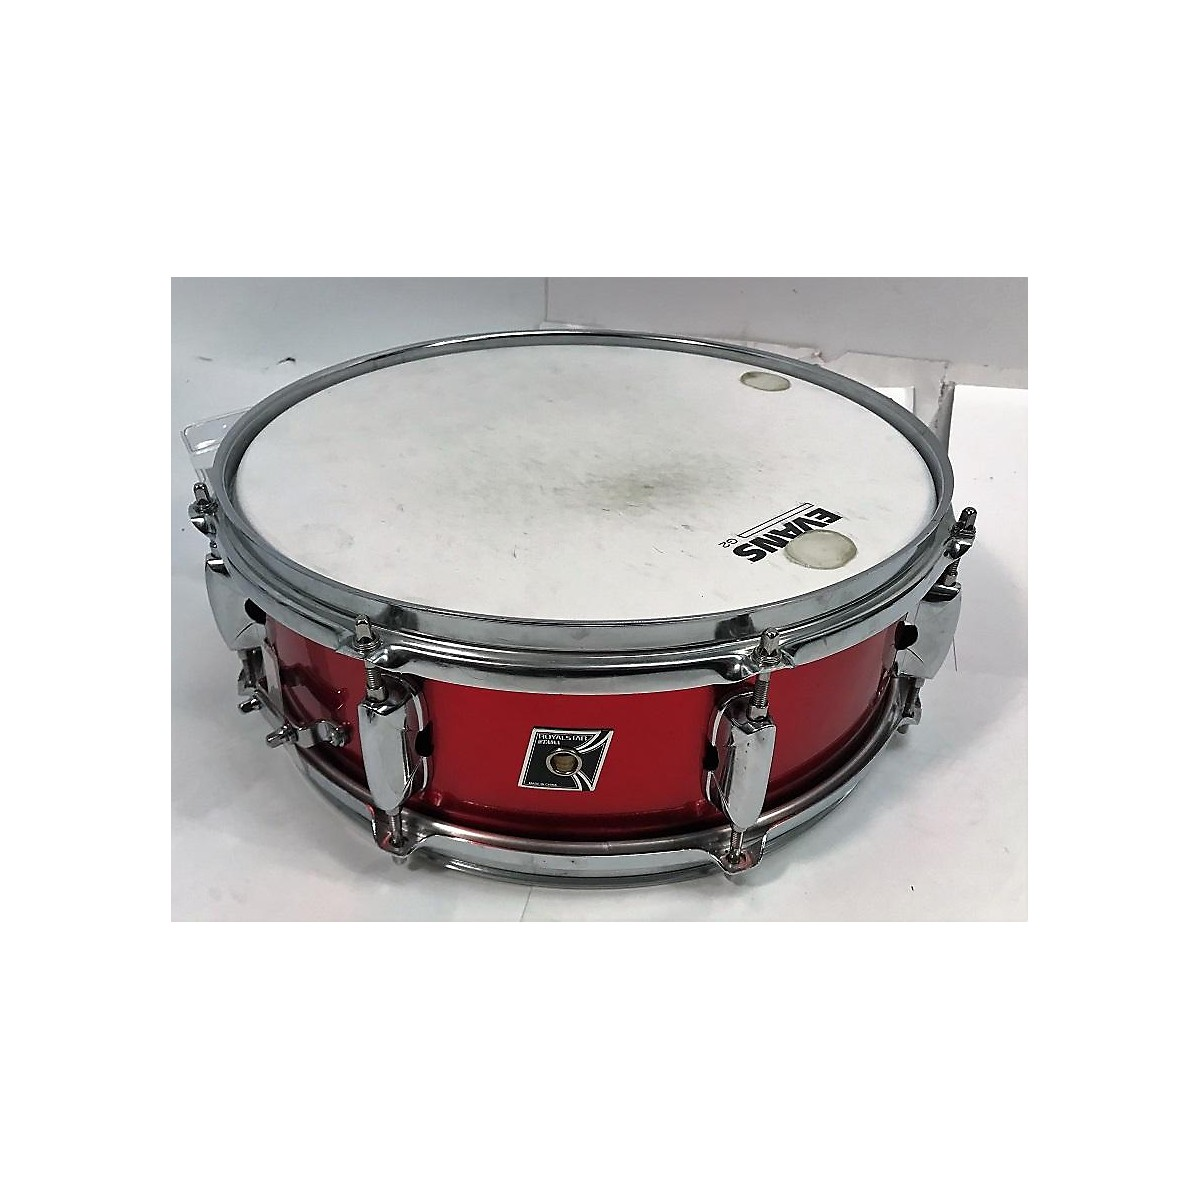 TAMA 5.5X14 Royalstar Drum